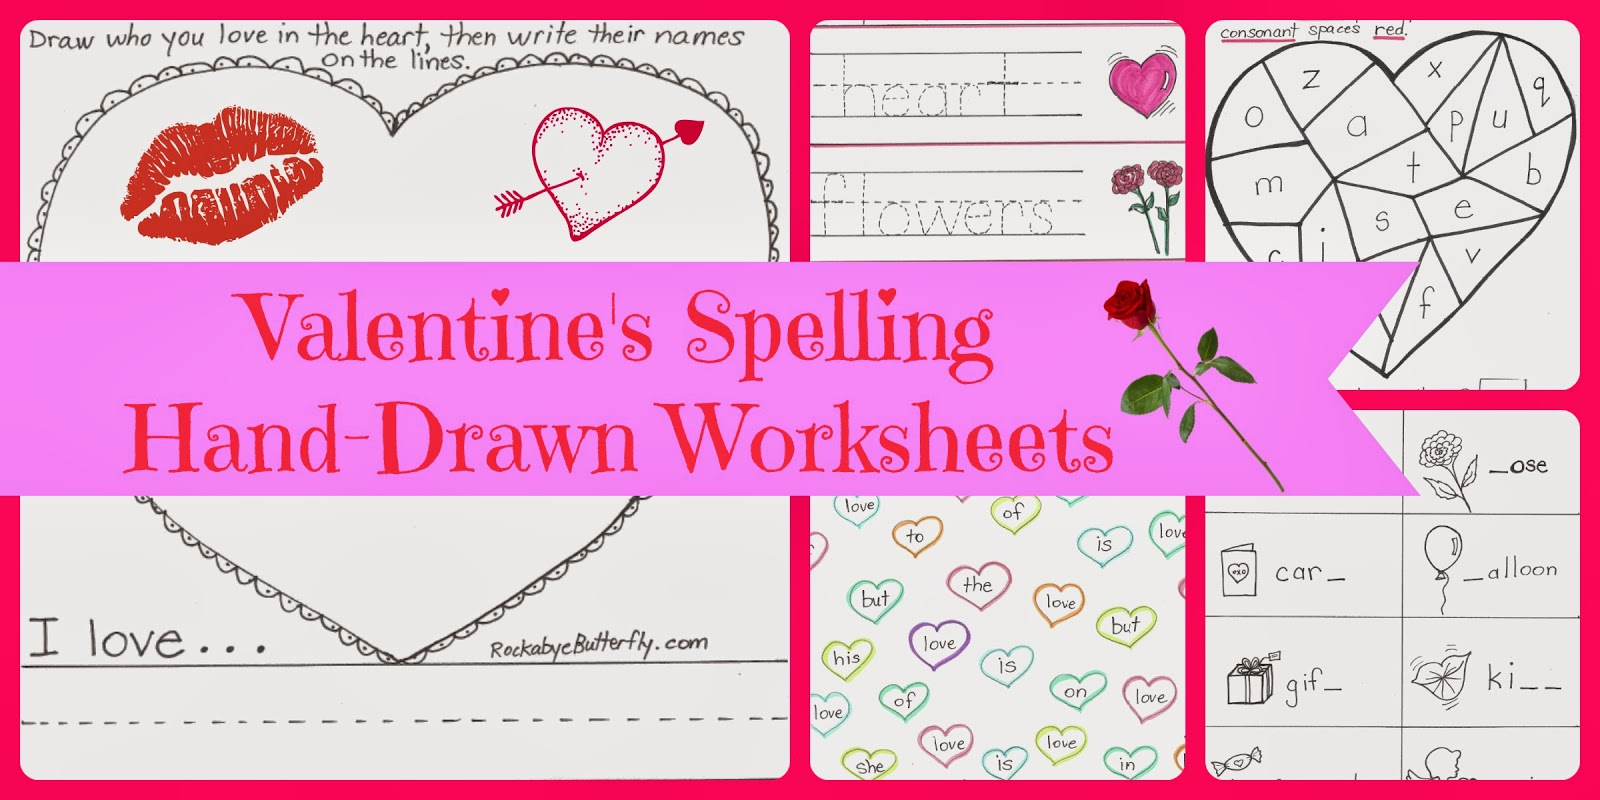 http://www.rockabyebutterfly.com/2014/01/valentines-spelling-worksheets.html